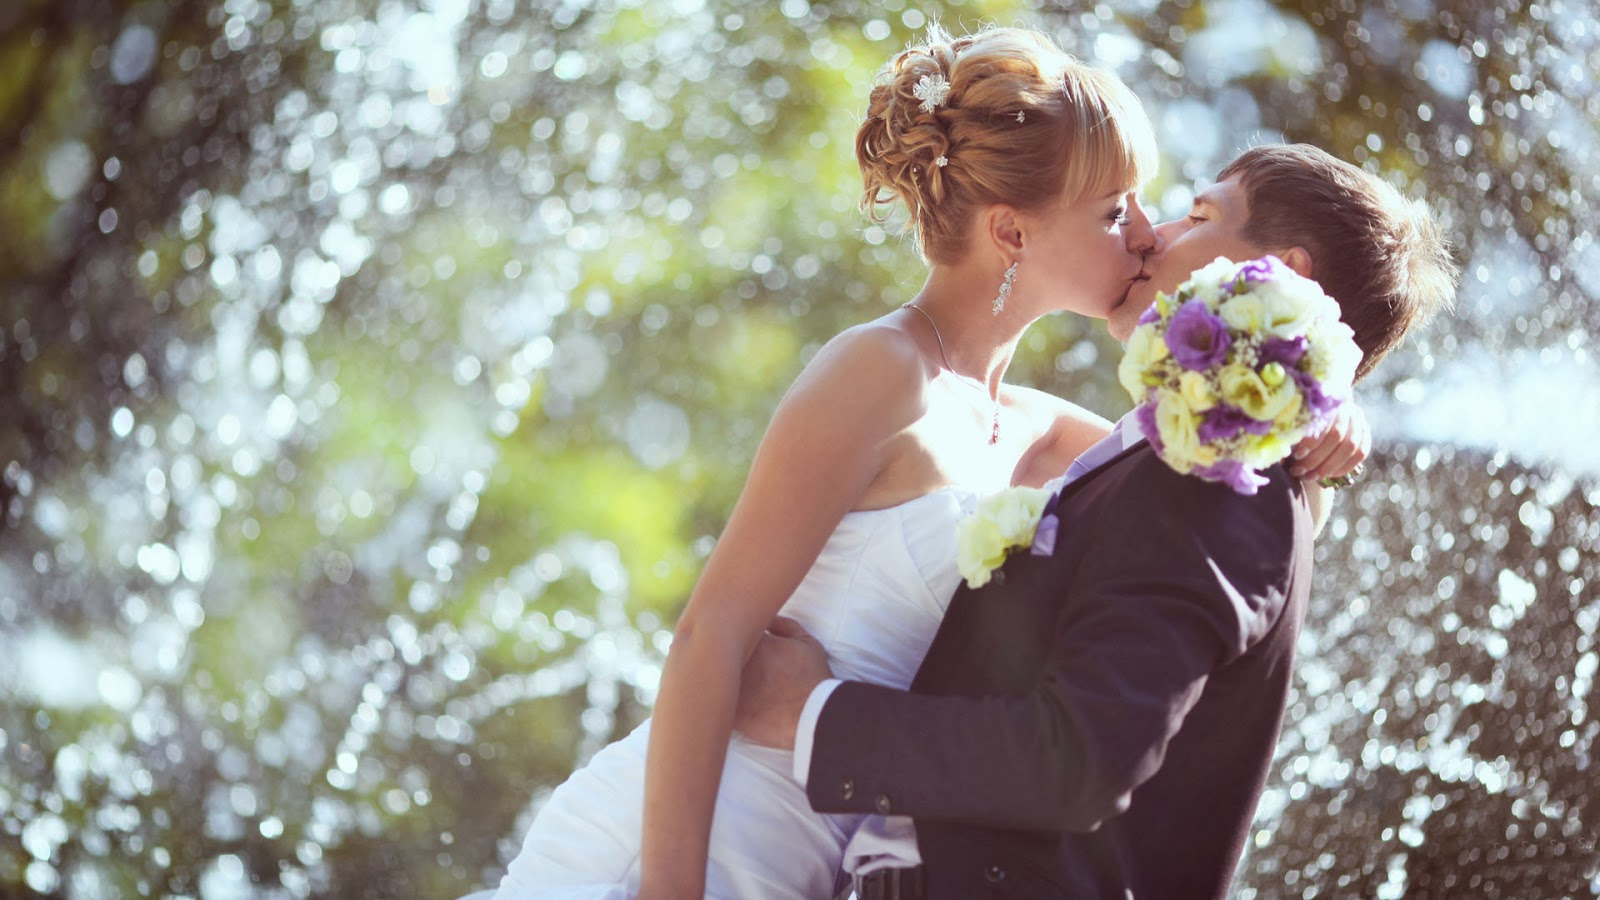 weddings couple first kissing hd wallpaper 1080p 21a